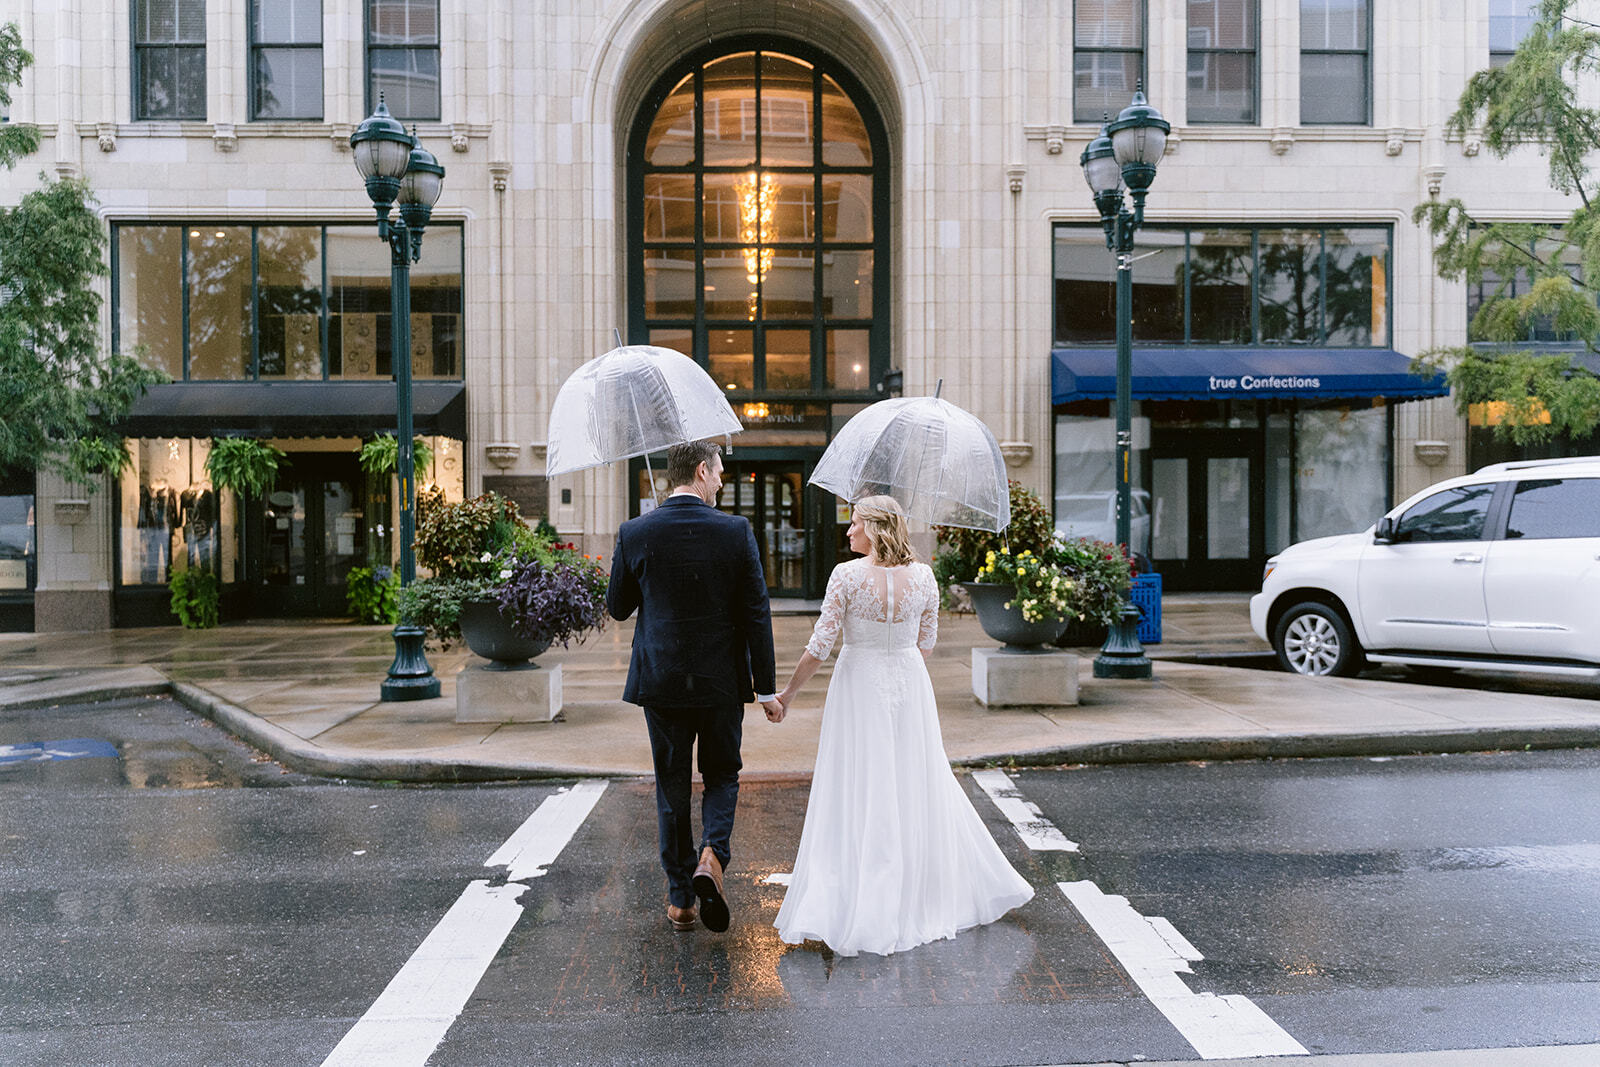 Weddings in Downtown Asheville North Carolina Have a Beautiful Urban Setting